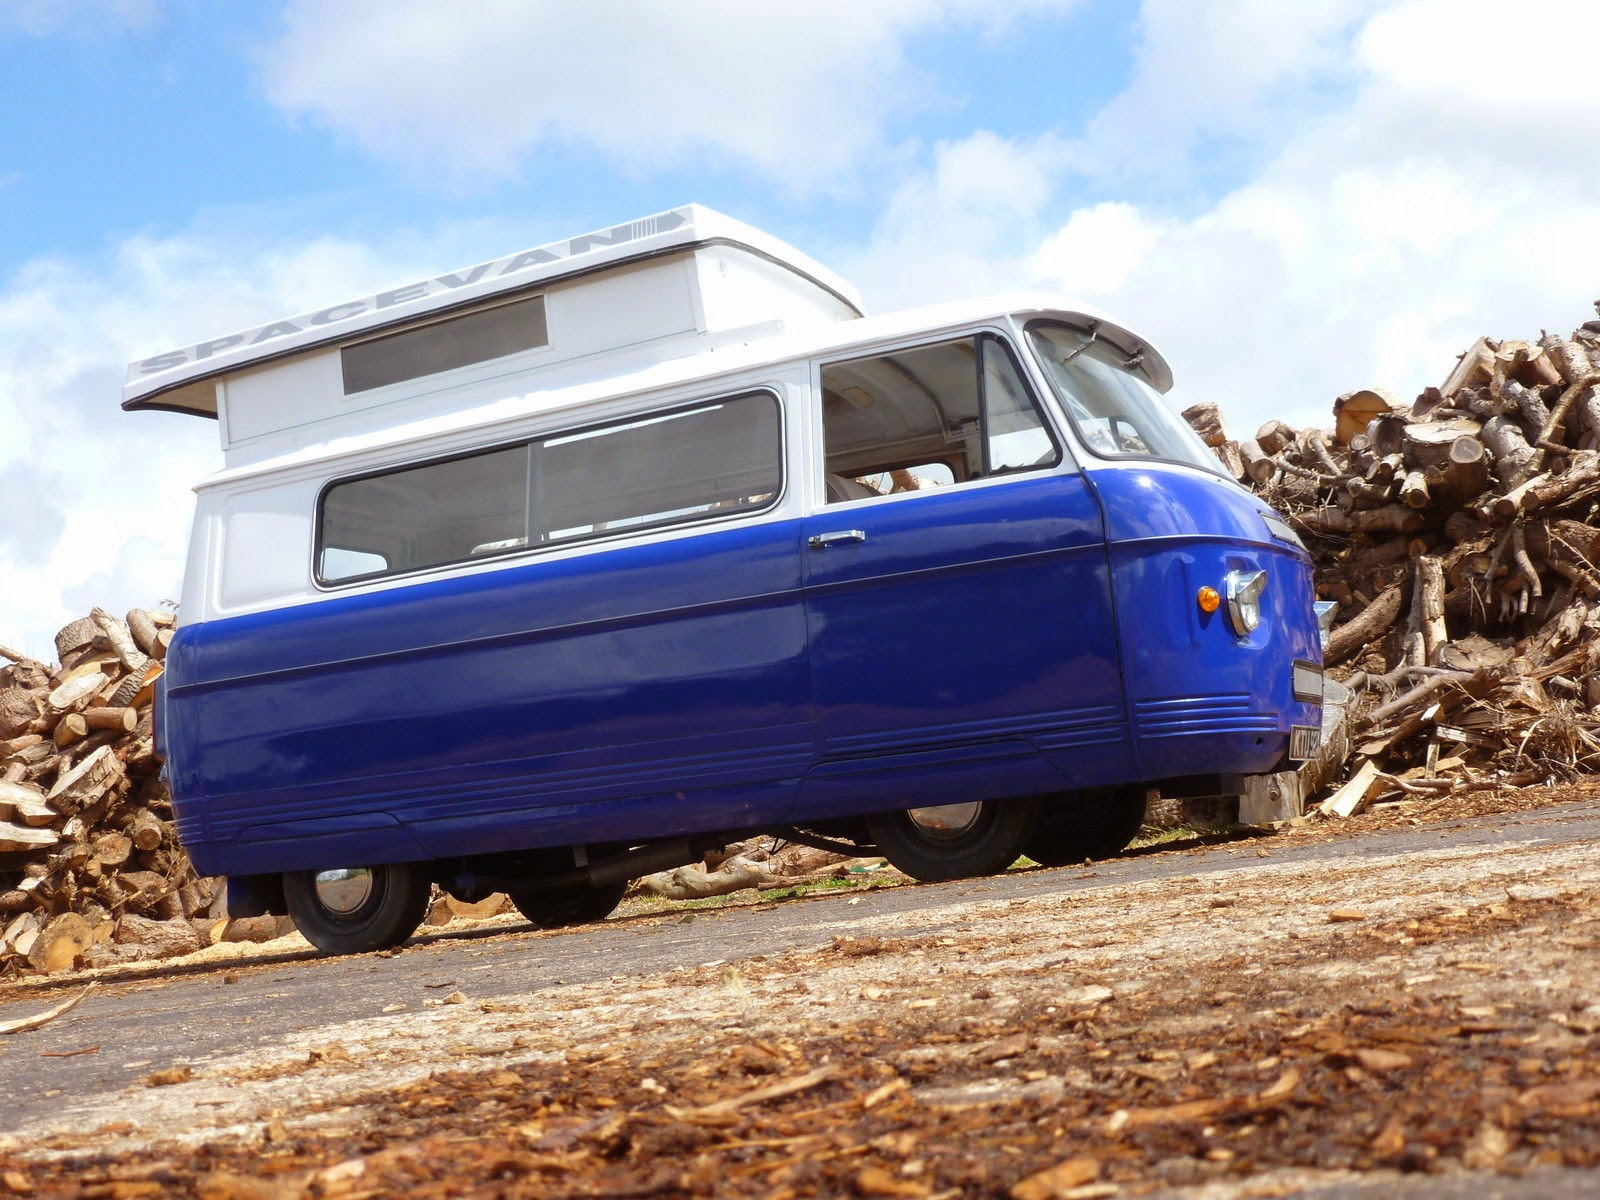 Used RVs 1983 Dodge Commer Spacevan Small RV for Sale For ...